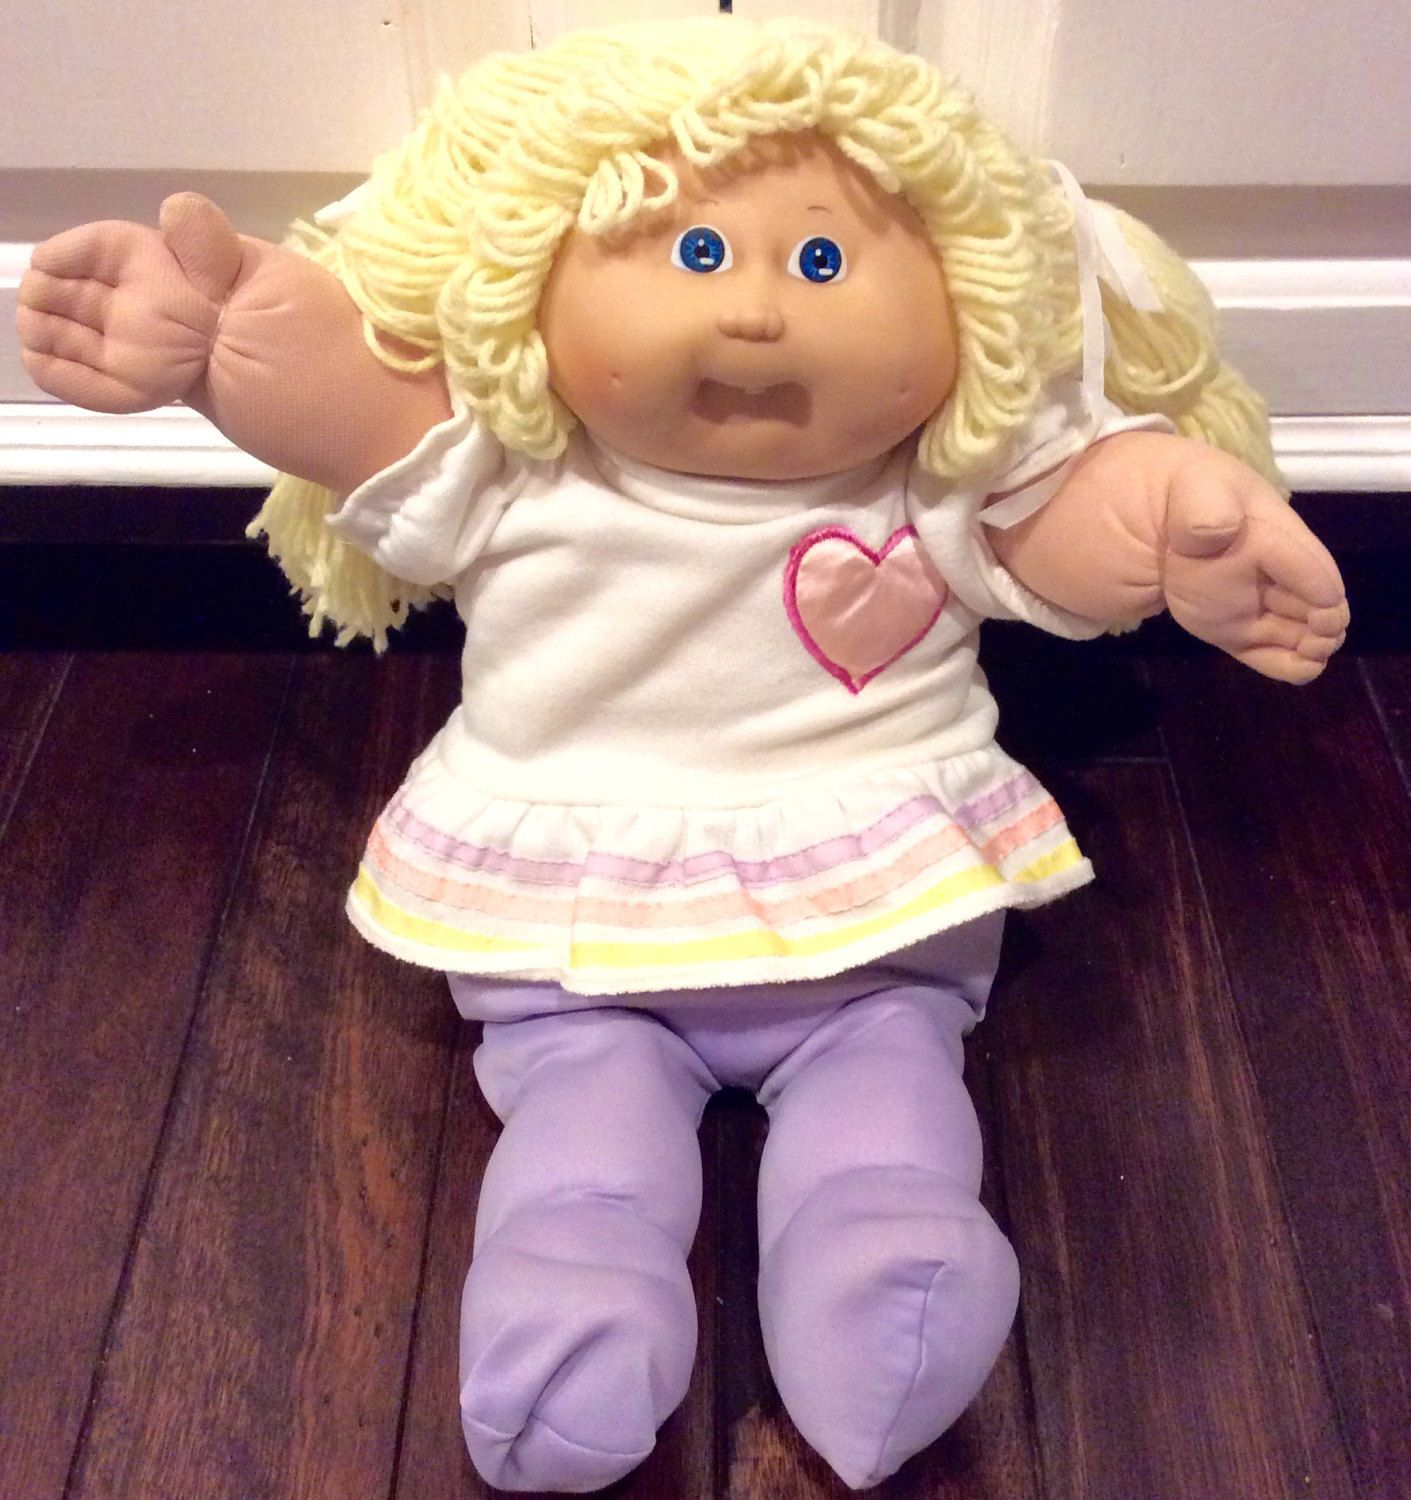 1985 Cabbage Patch Kid One Tooth Blonde Haired Doll Coleco Etsy Cabbage Patch Kids Cabbage Patch Dolls Cabbage Patch